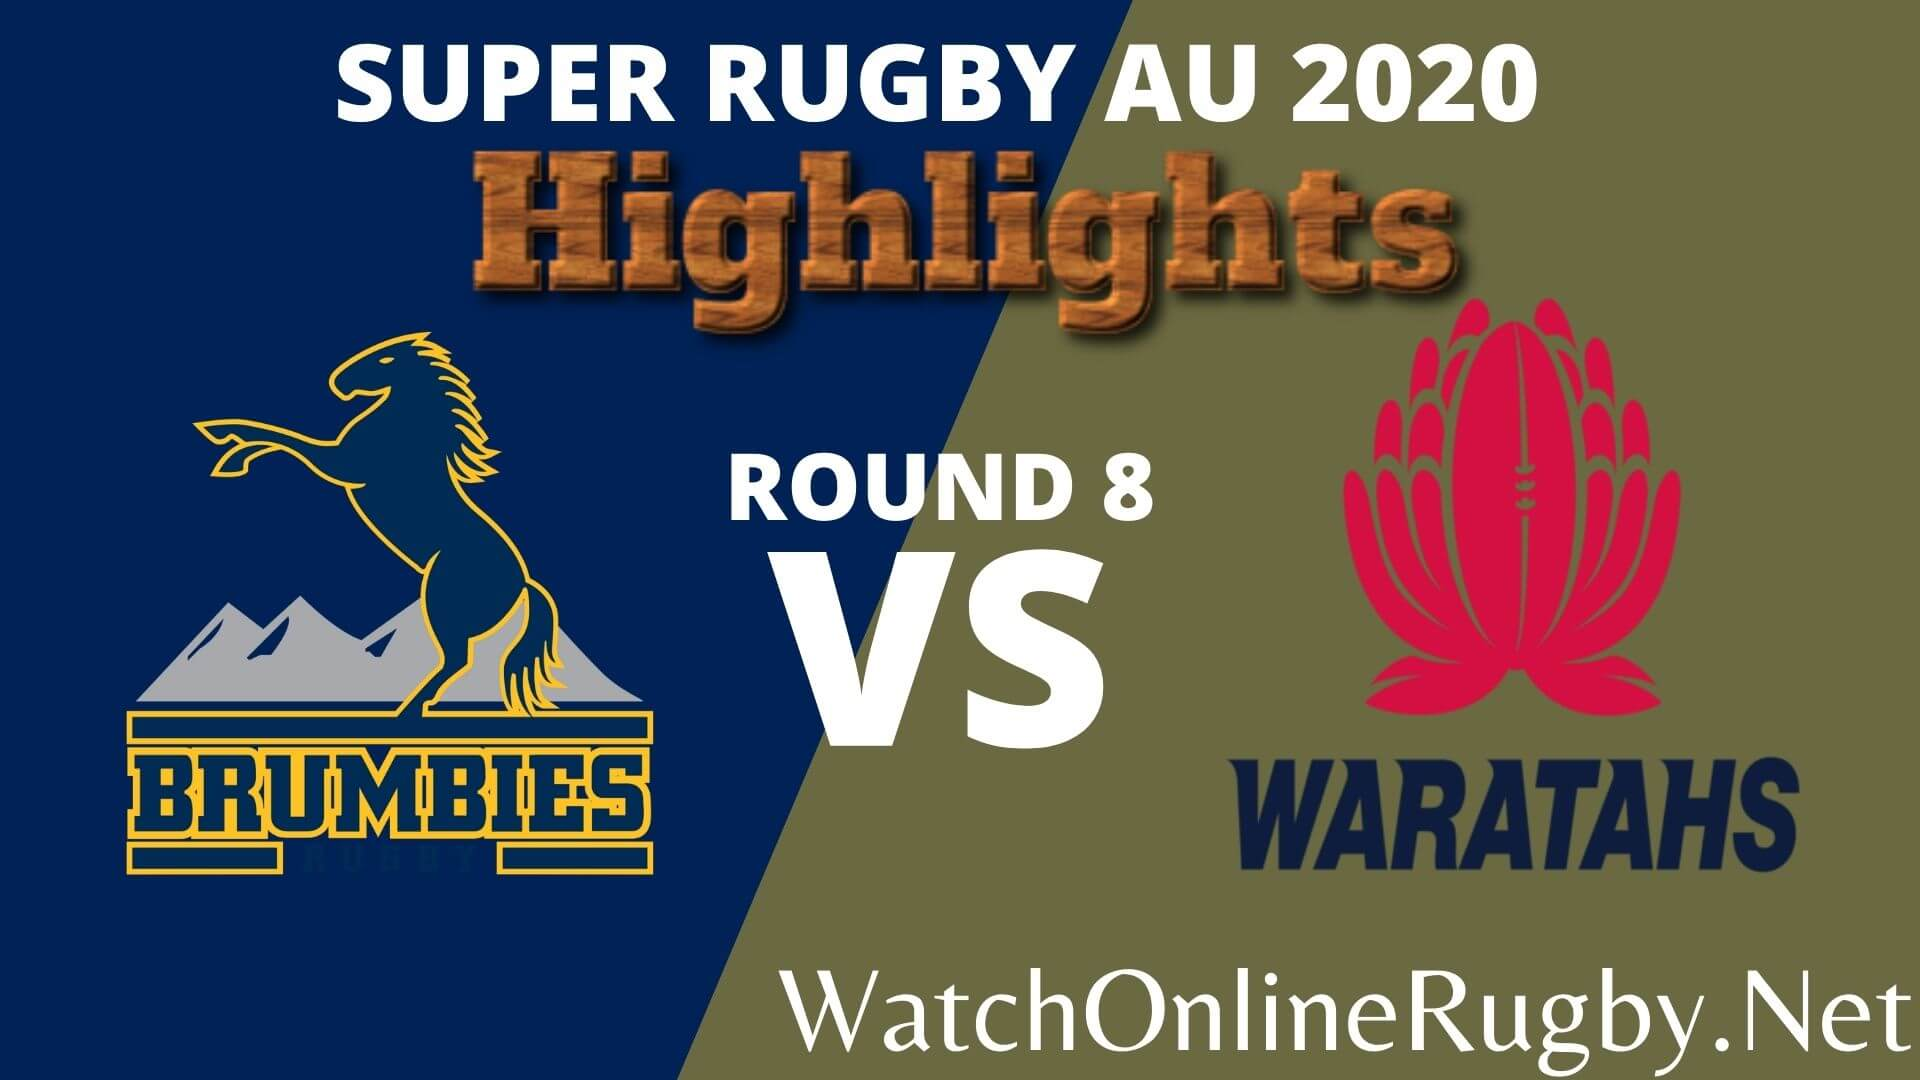 Brumbies Vs Waratahs Highlights 2020 Rd 8